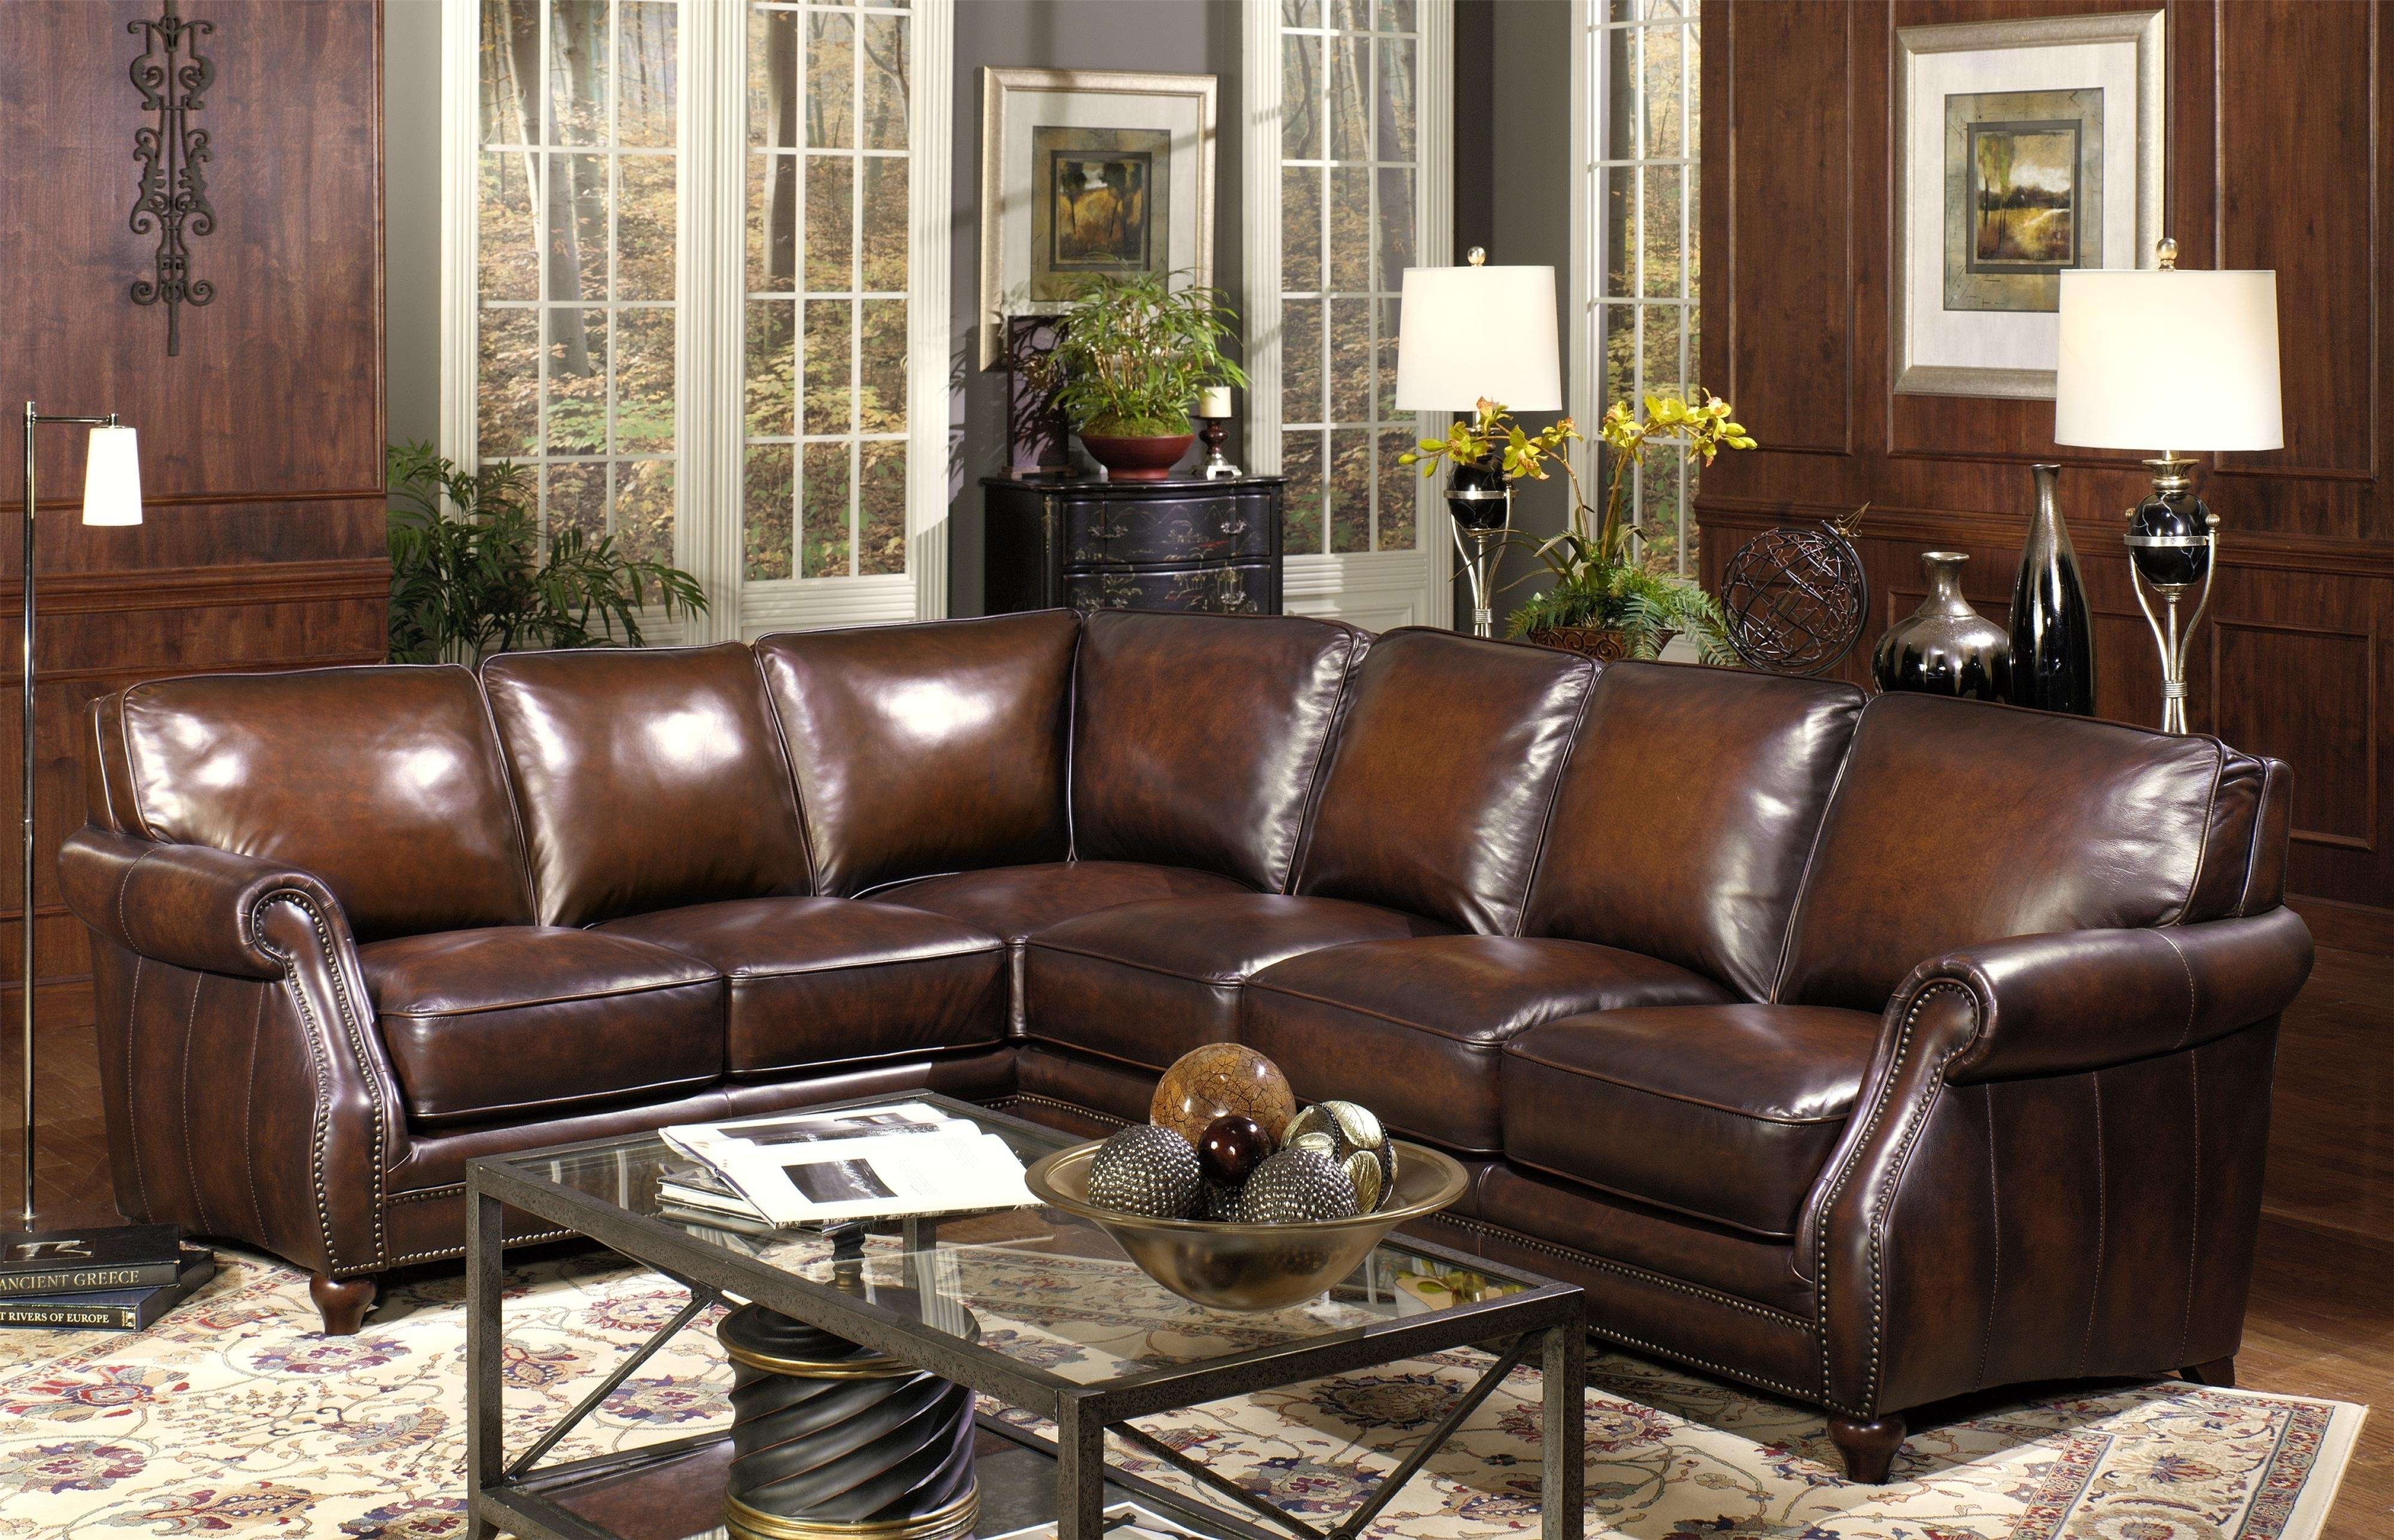 Elegant Leather Sectional Sofas San Diego 35 On Gray Modular In With Regard To Sectional Sofas From Europe (Image 3 of 10)